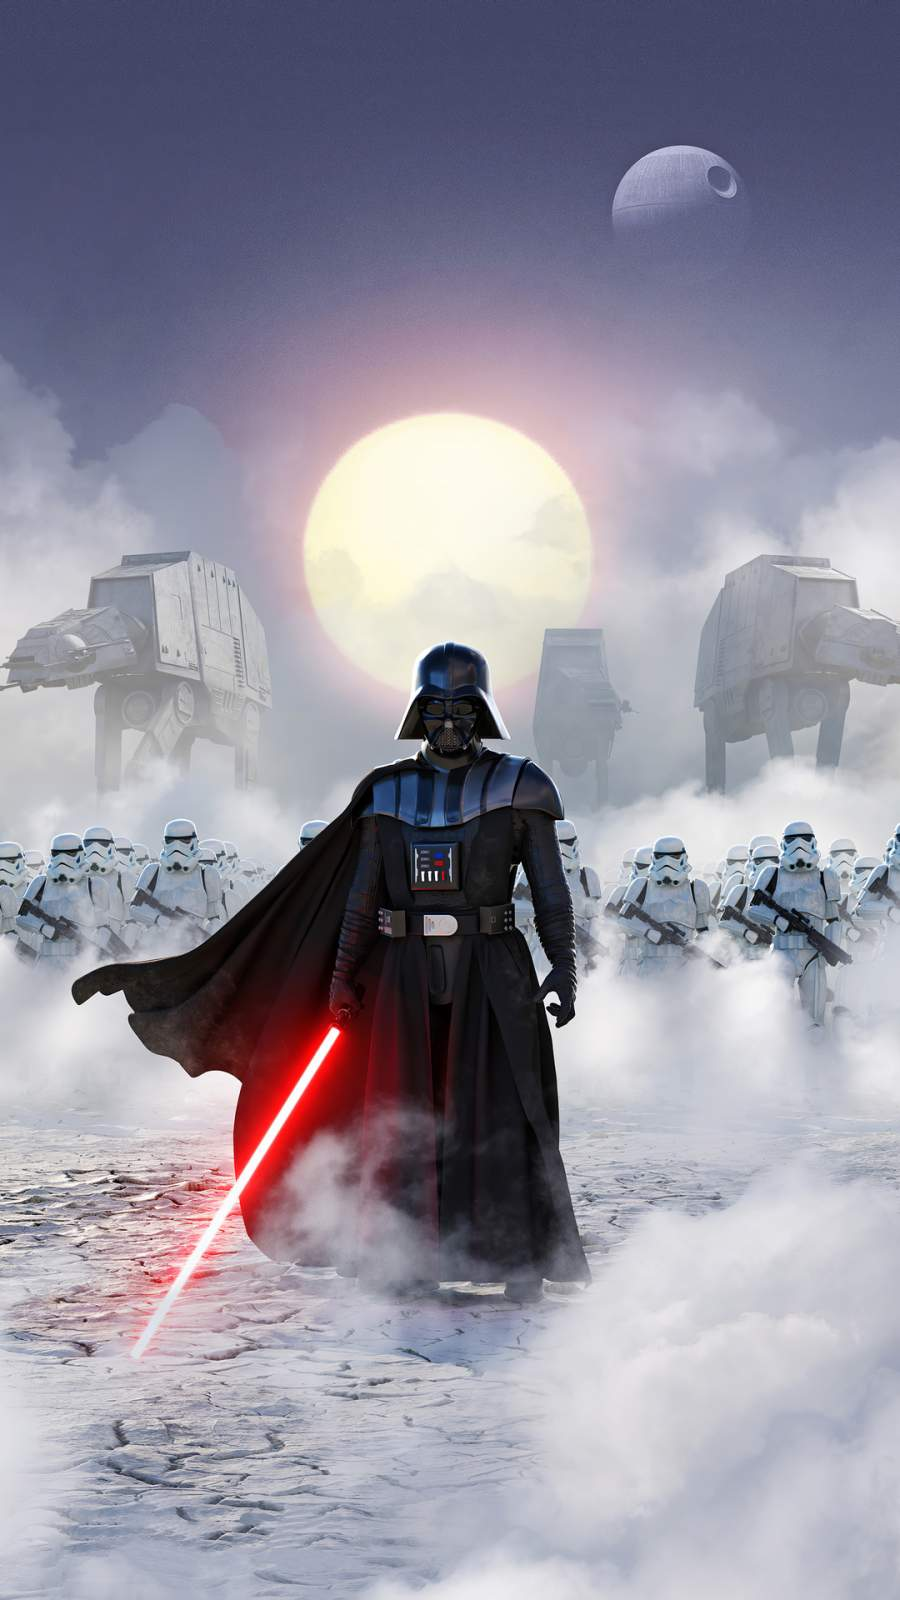 Star Wars Army iPhone Wallpaper